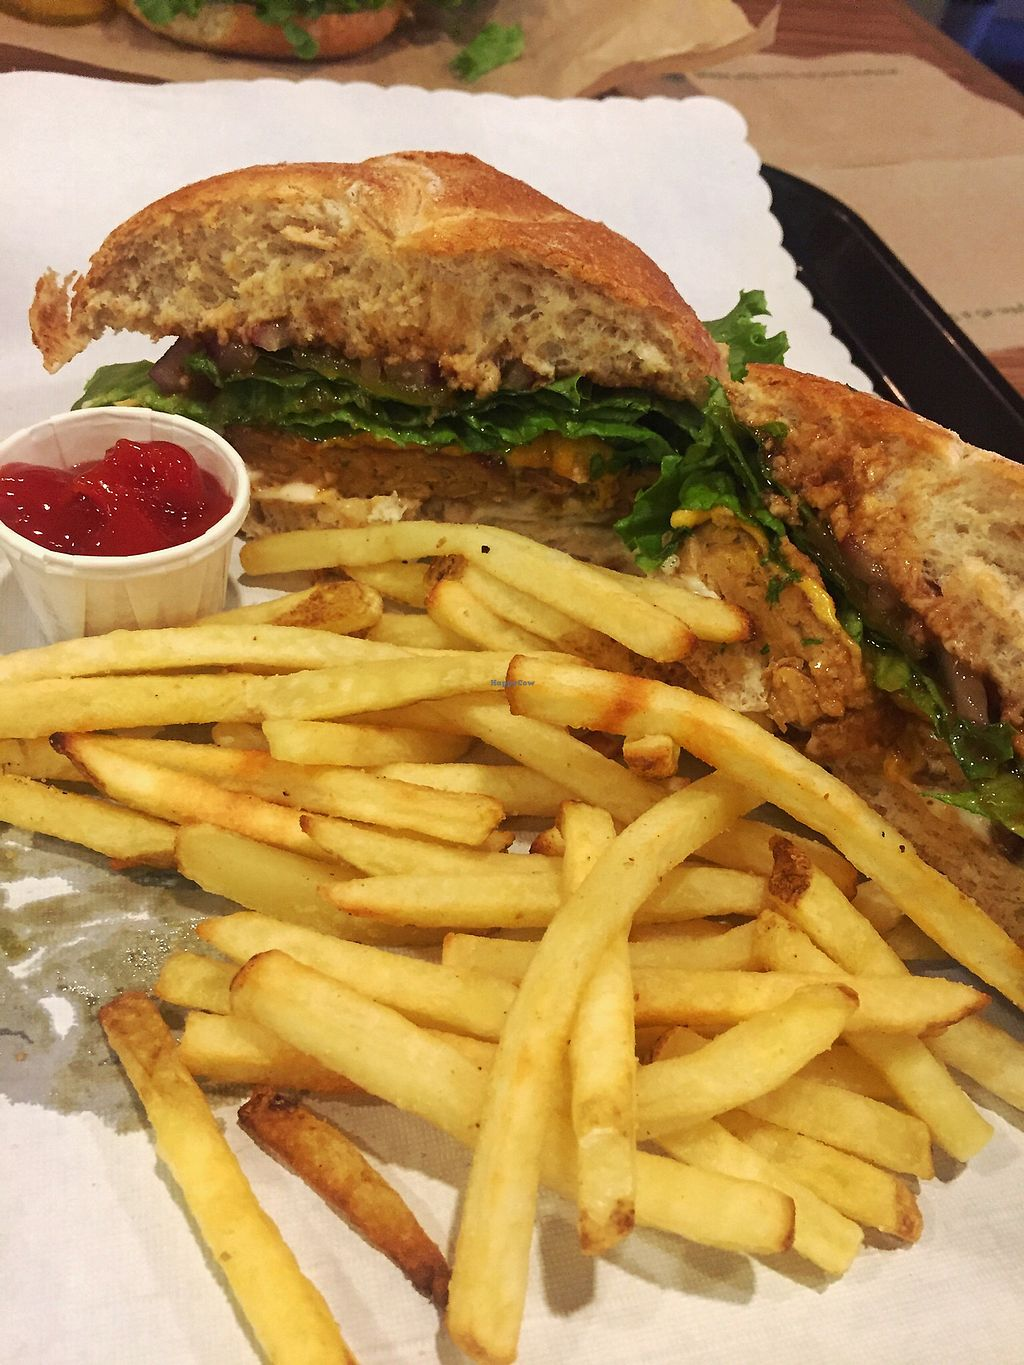 """Photo of Tera V Burger  by <a href=""""/members/profile/theresabee"""">theresabee</a> <br/>BBQ Tempeh Burger <br/> October 7, 2017  - <a href='/contact/abuse/image/32519/312538'>Report</a>"""